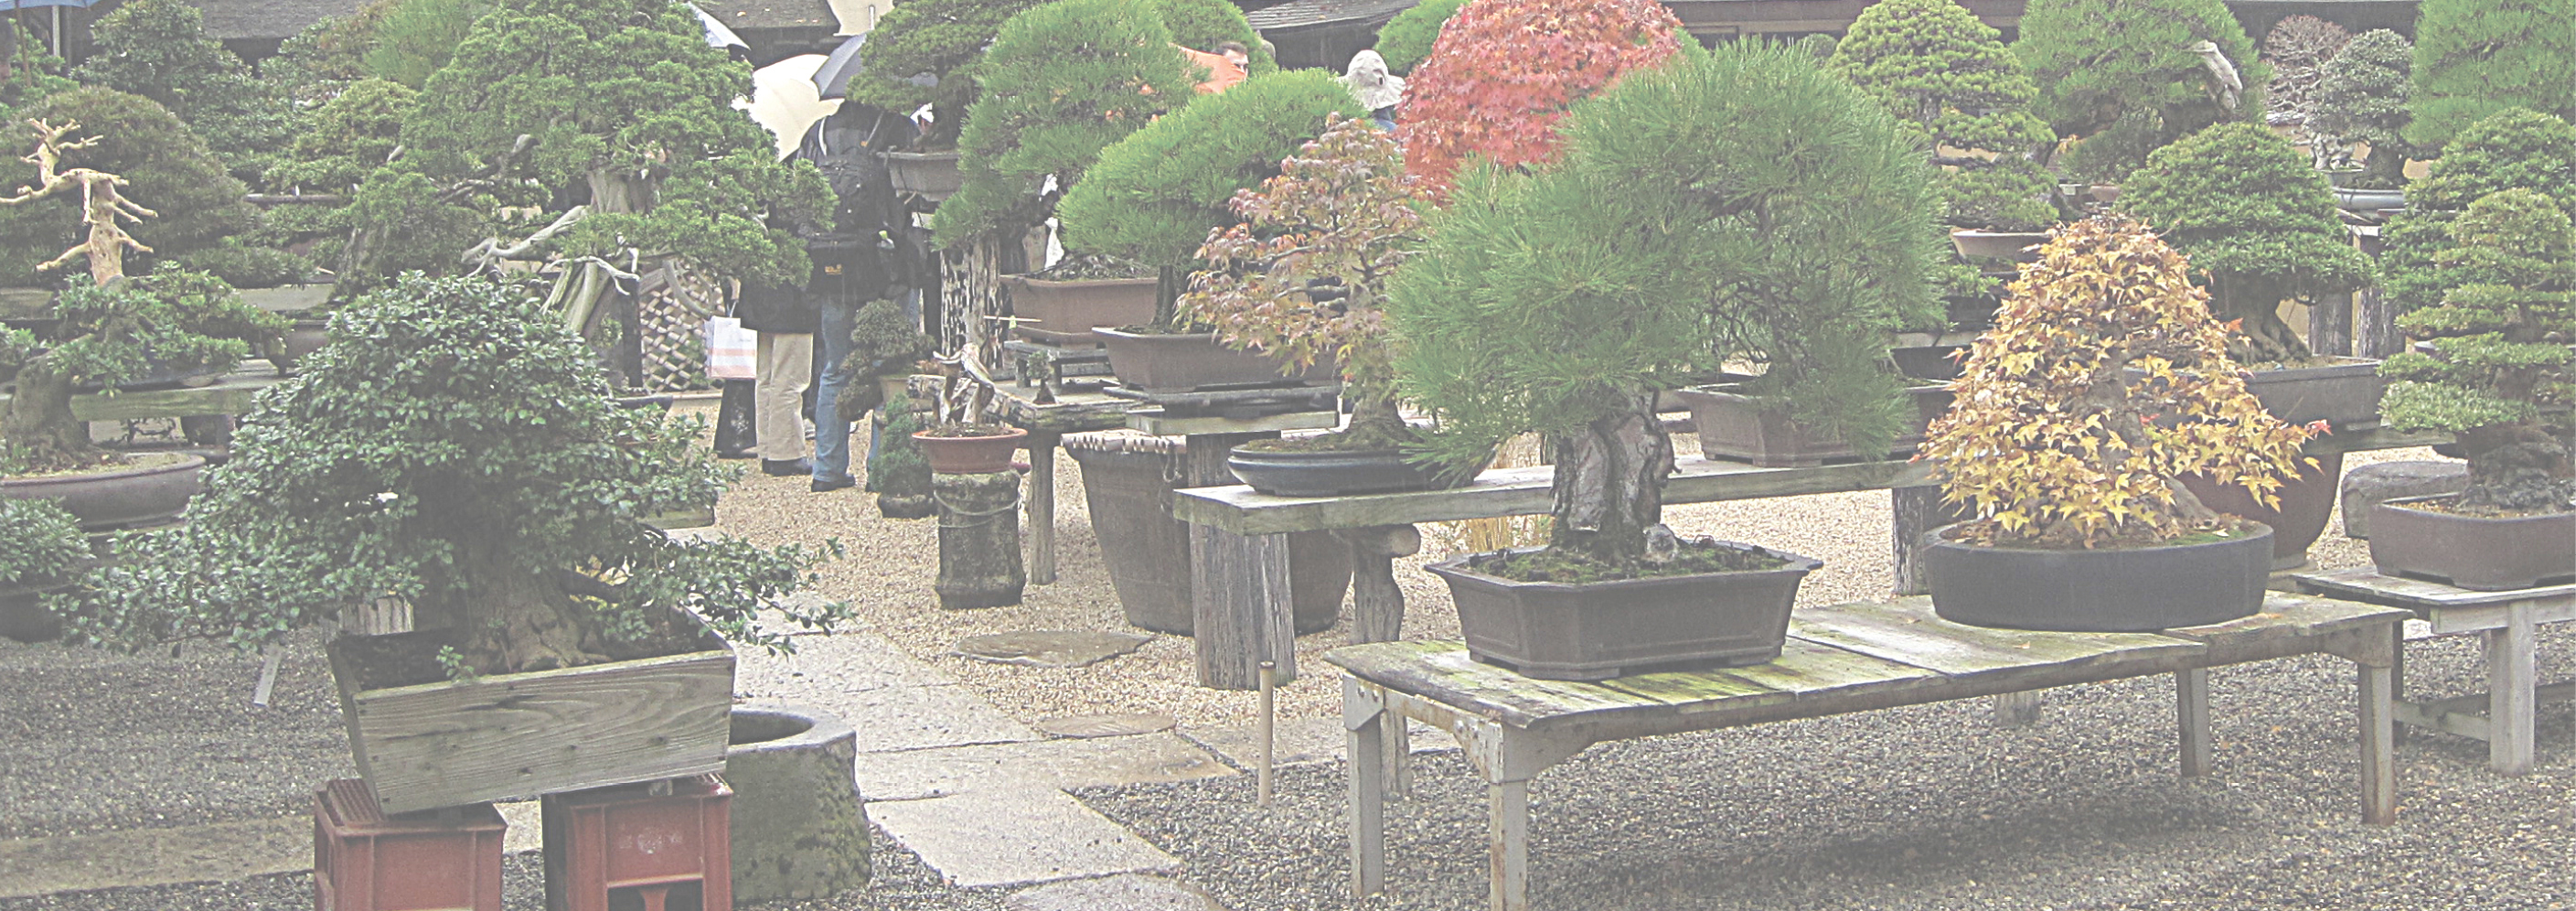 <span style='color: #003366; font-size: 20pt'>Appreciation for Bonsai and Viewing Stones has spread throughout the world—a world BCI Magazine brings to you with each issue.</span>